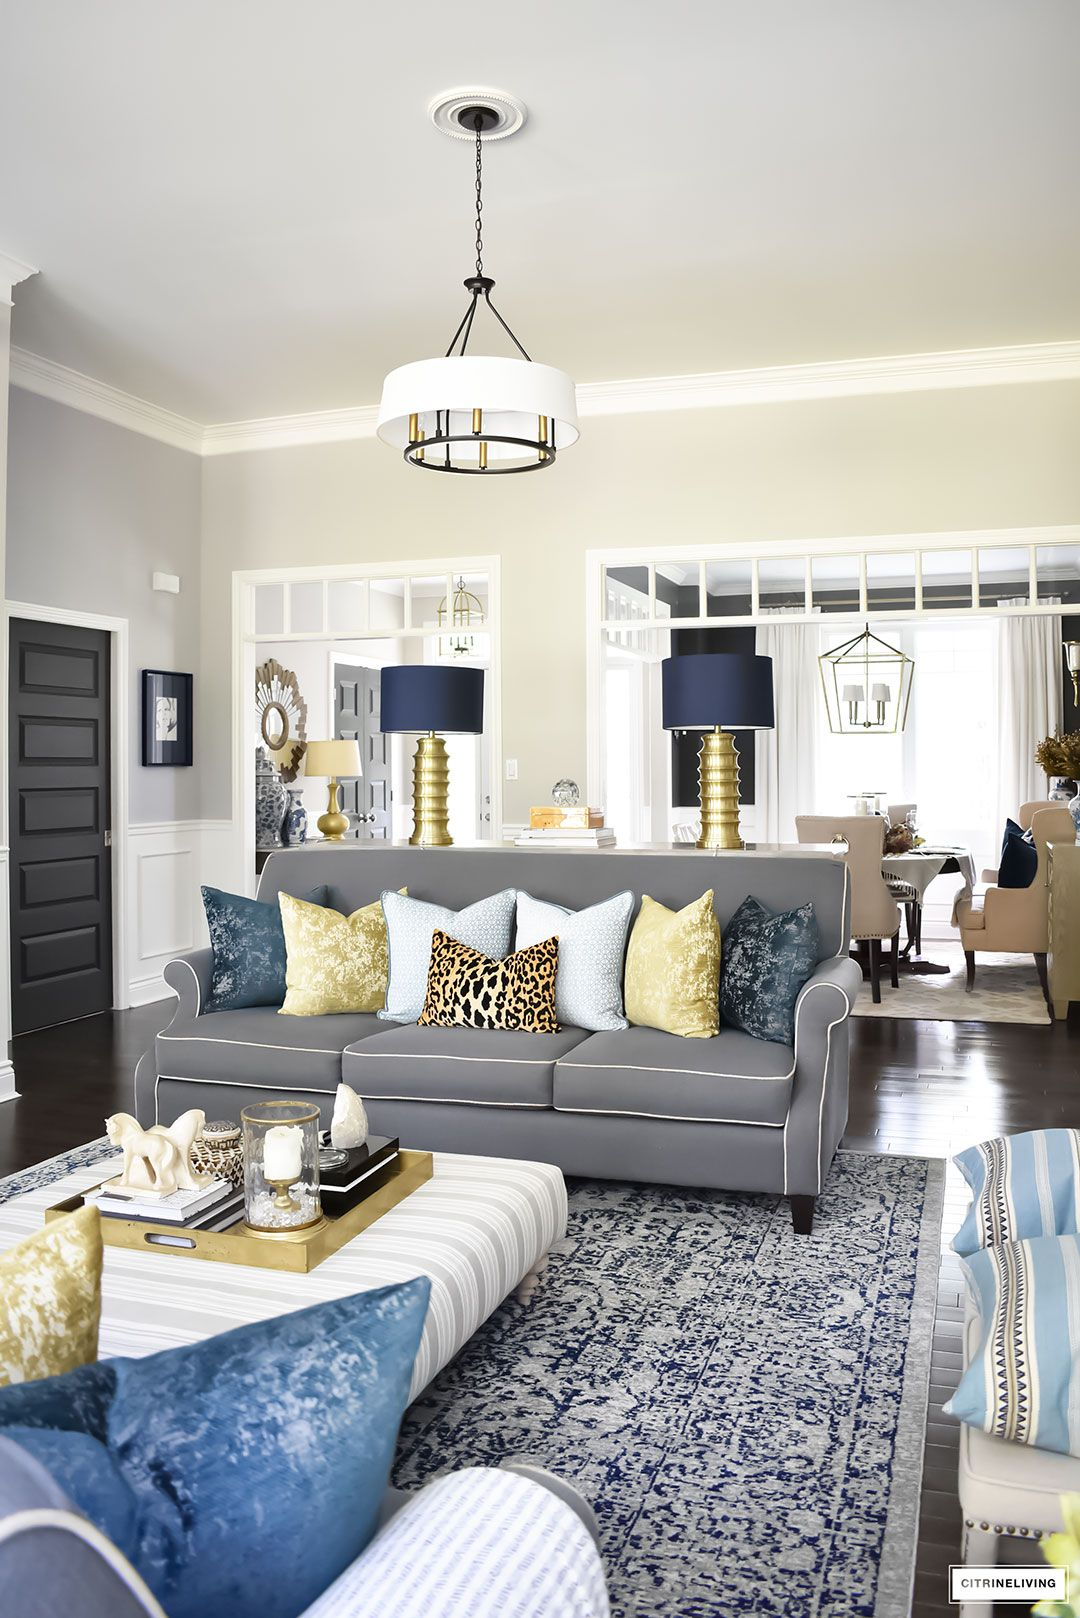 FALL HOME TOUR USING RICH COLORS, BRASS AND GOLD  Blue and gold